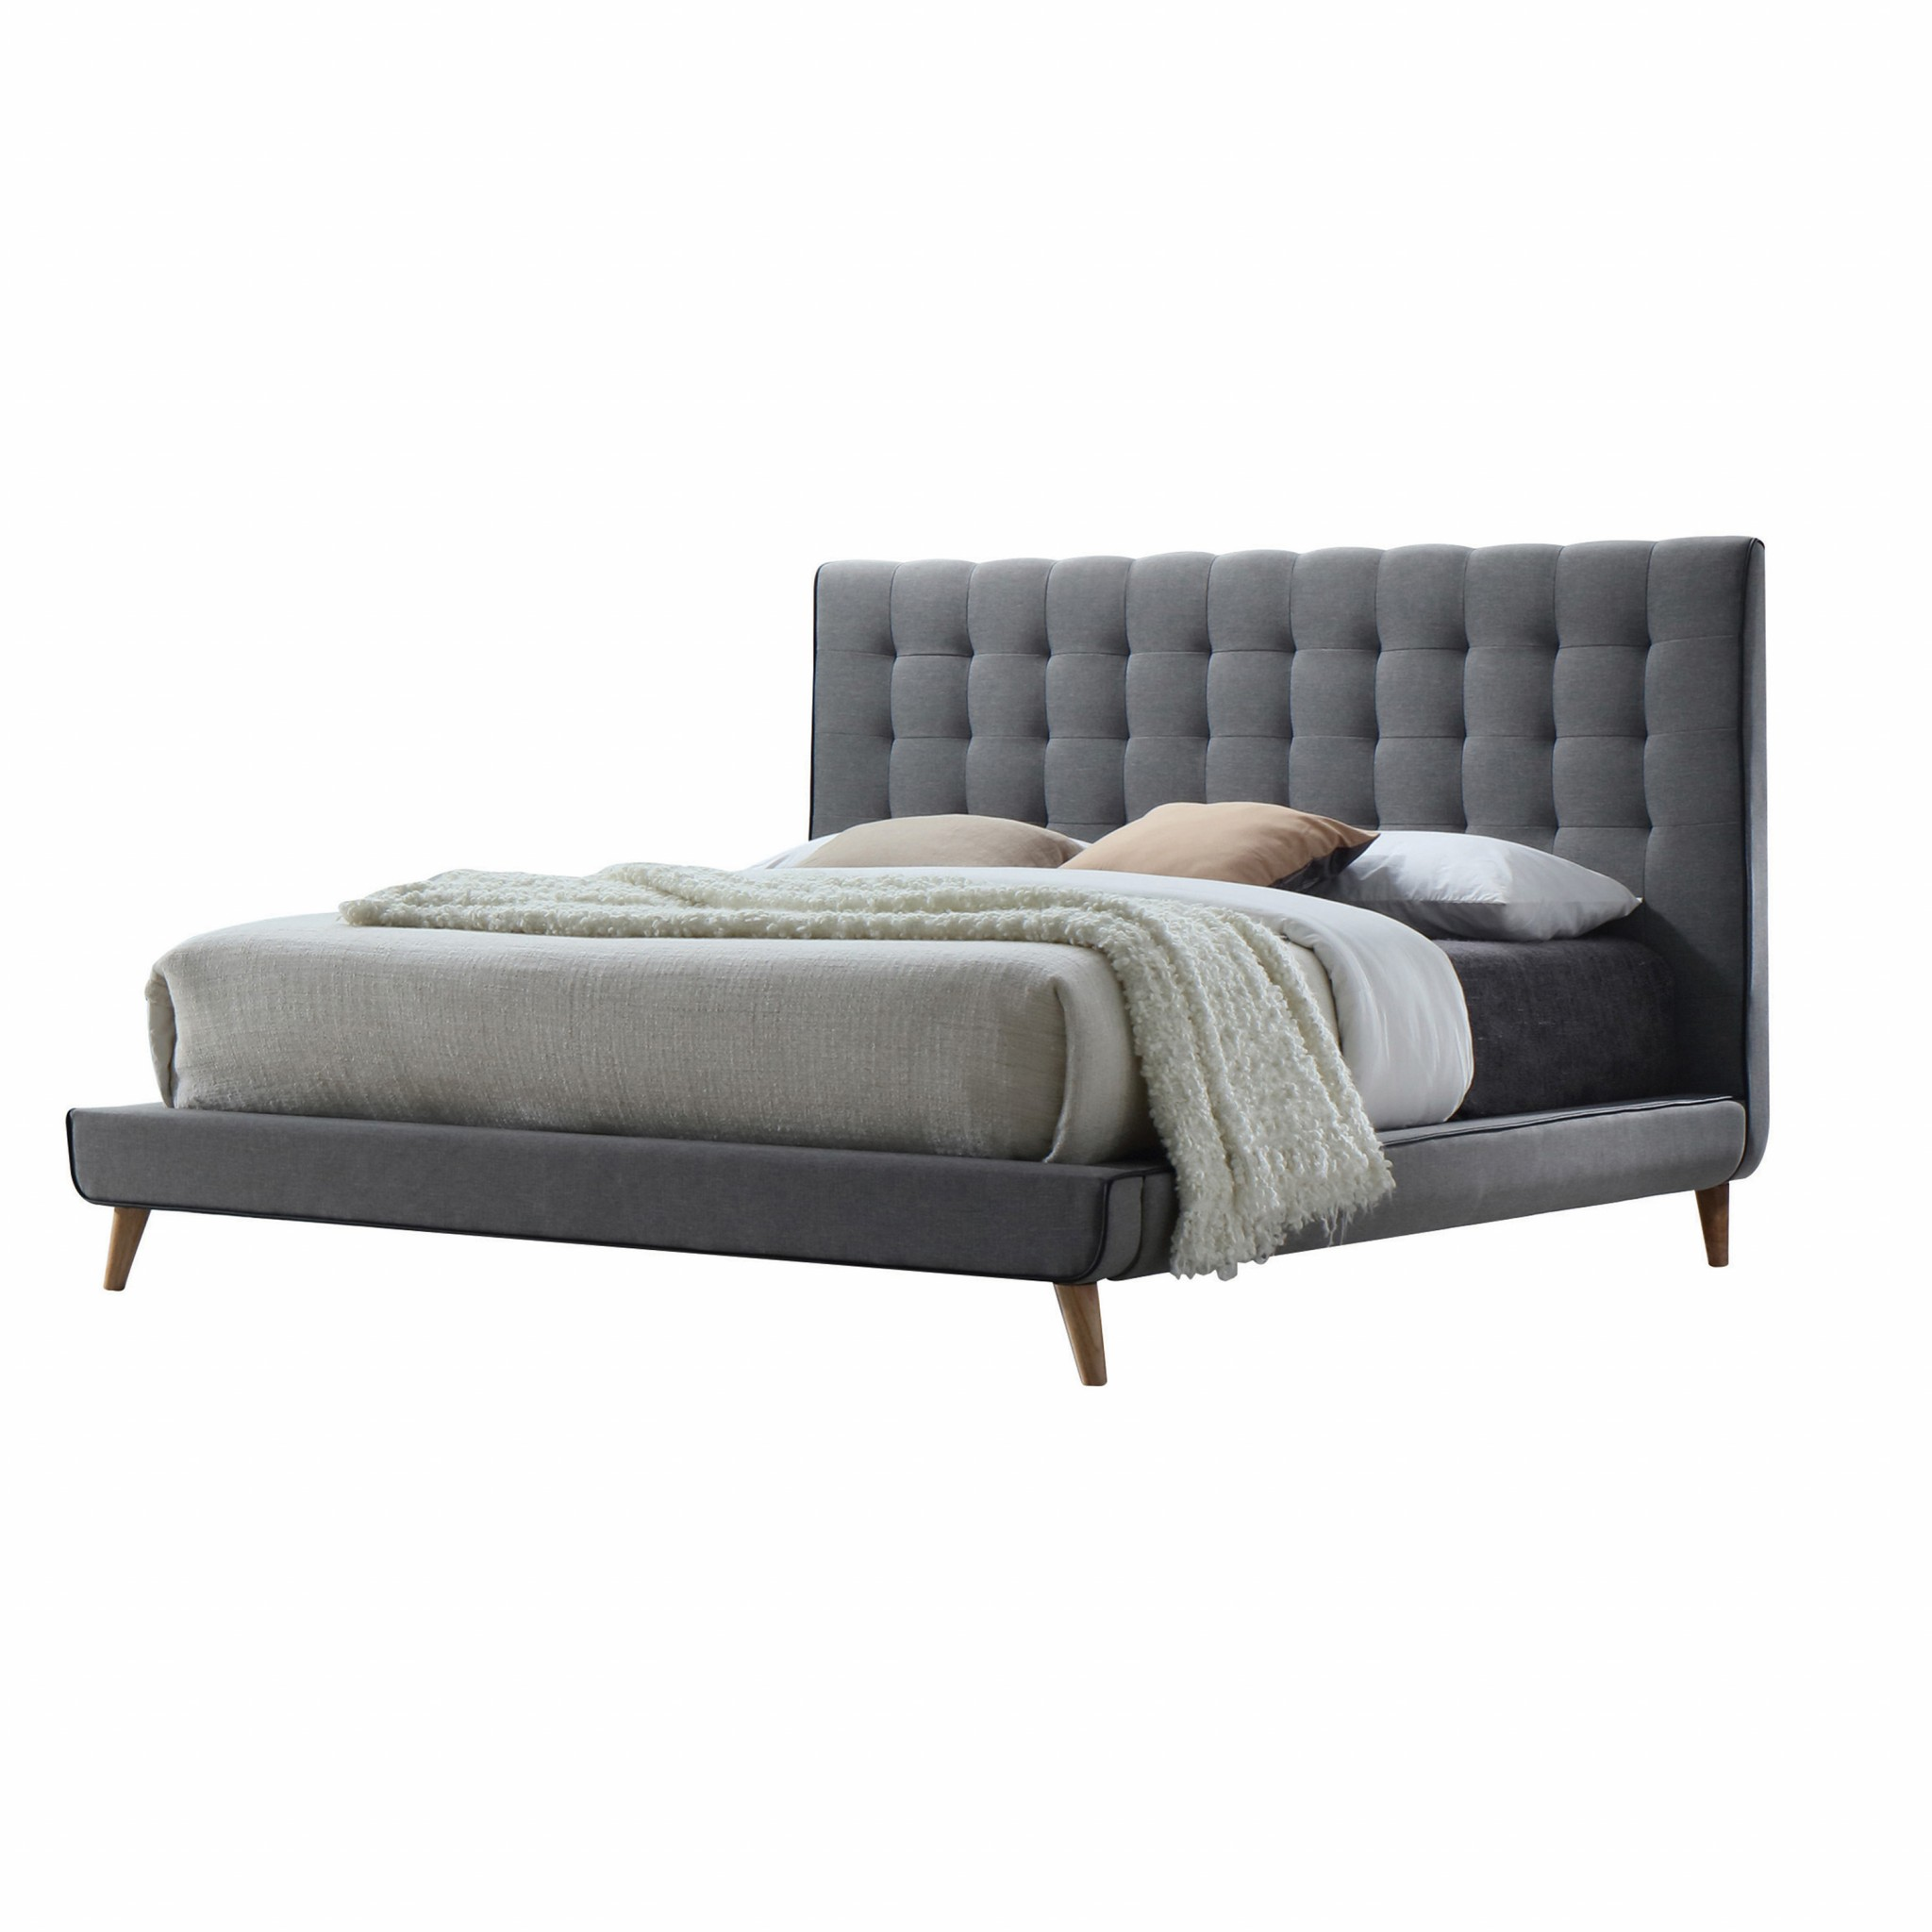 "89"" X 69"" X 46"" Queen Light Gray Fabric Bed"